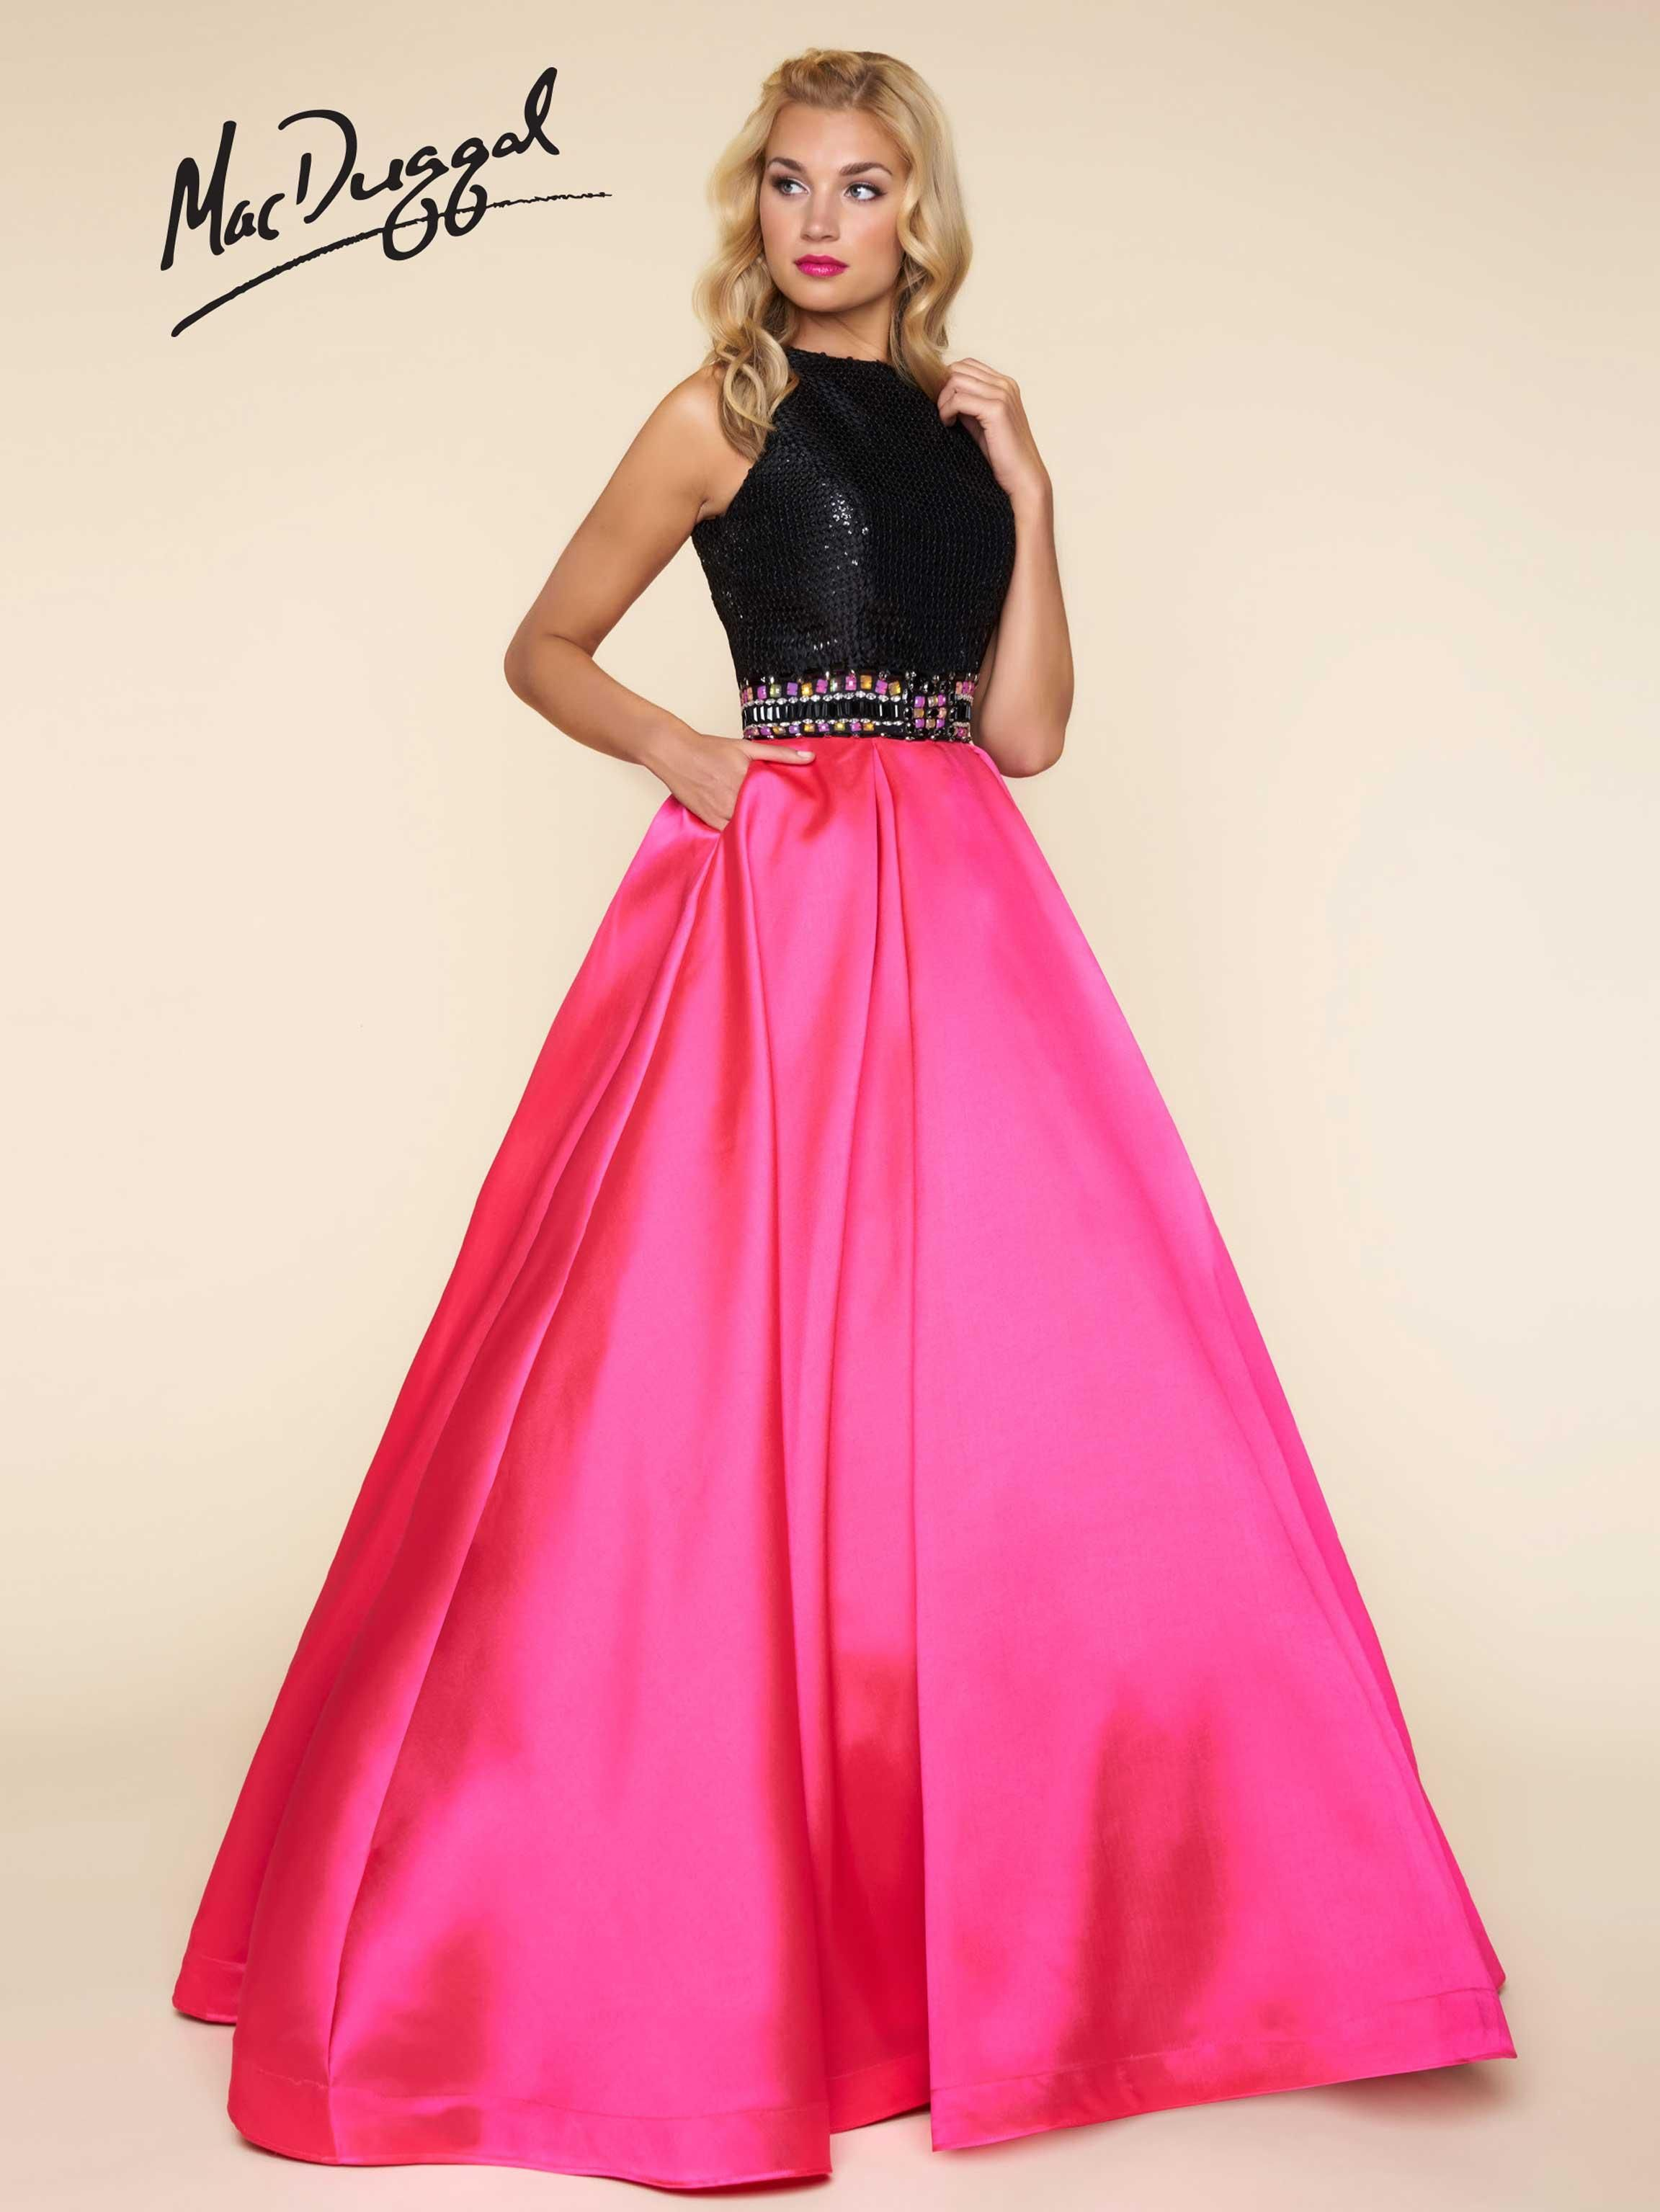 6baa86b34c40 MacDuggal Sleeveless Ballgown with fully beaded bodice and open back, satin  skirt with pockets. Available in sizes 0-16 in Hot Pink/Black and White/ Black